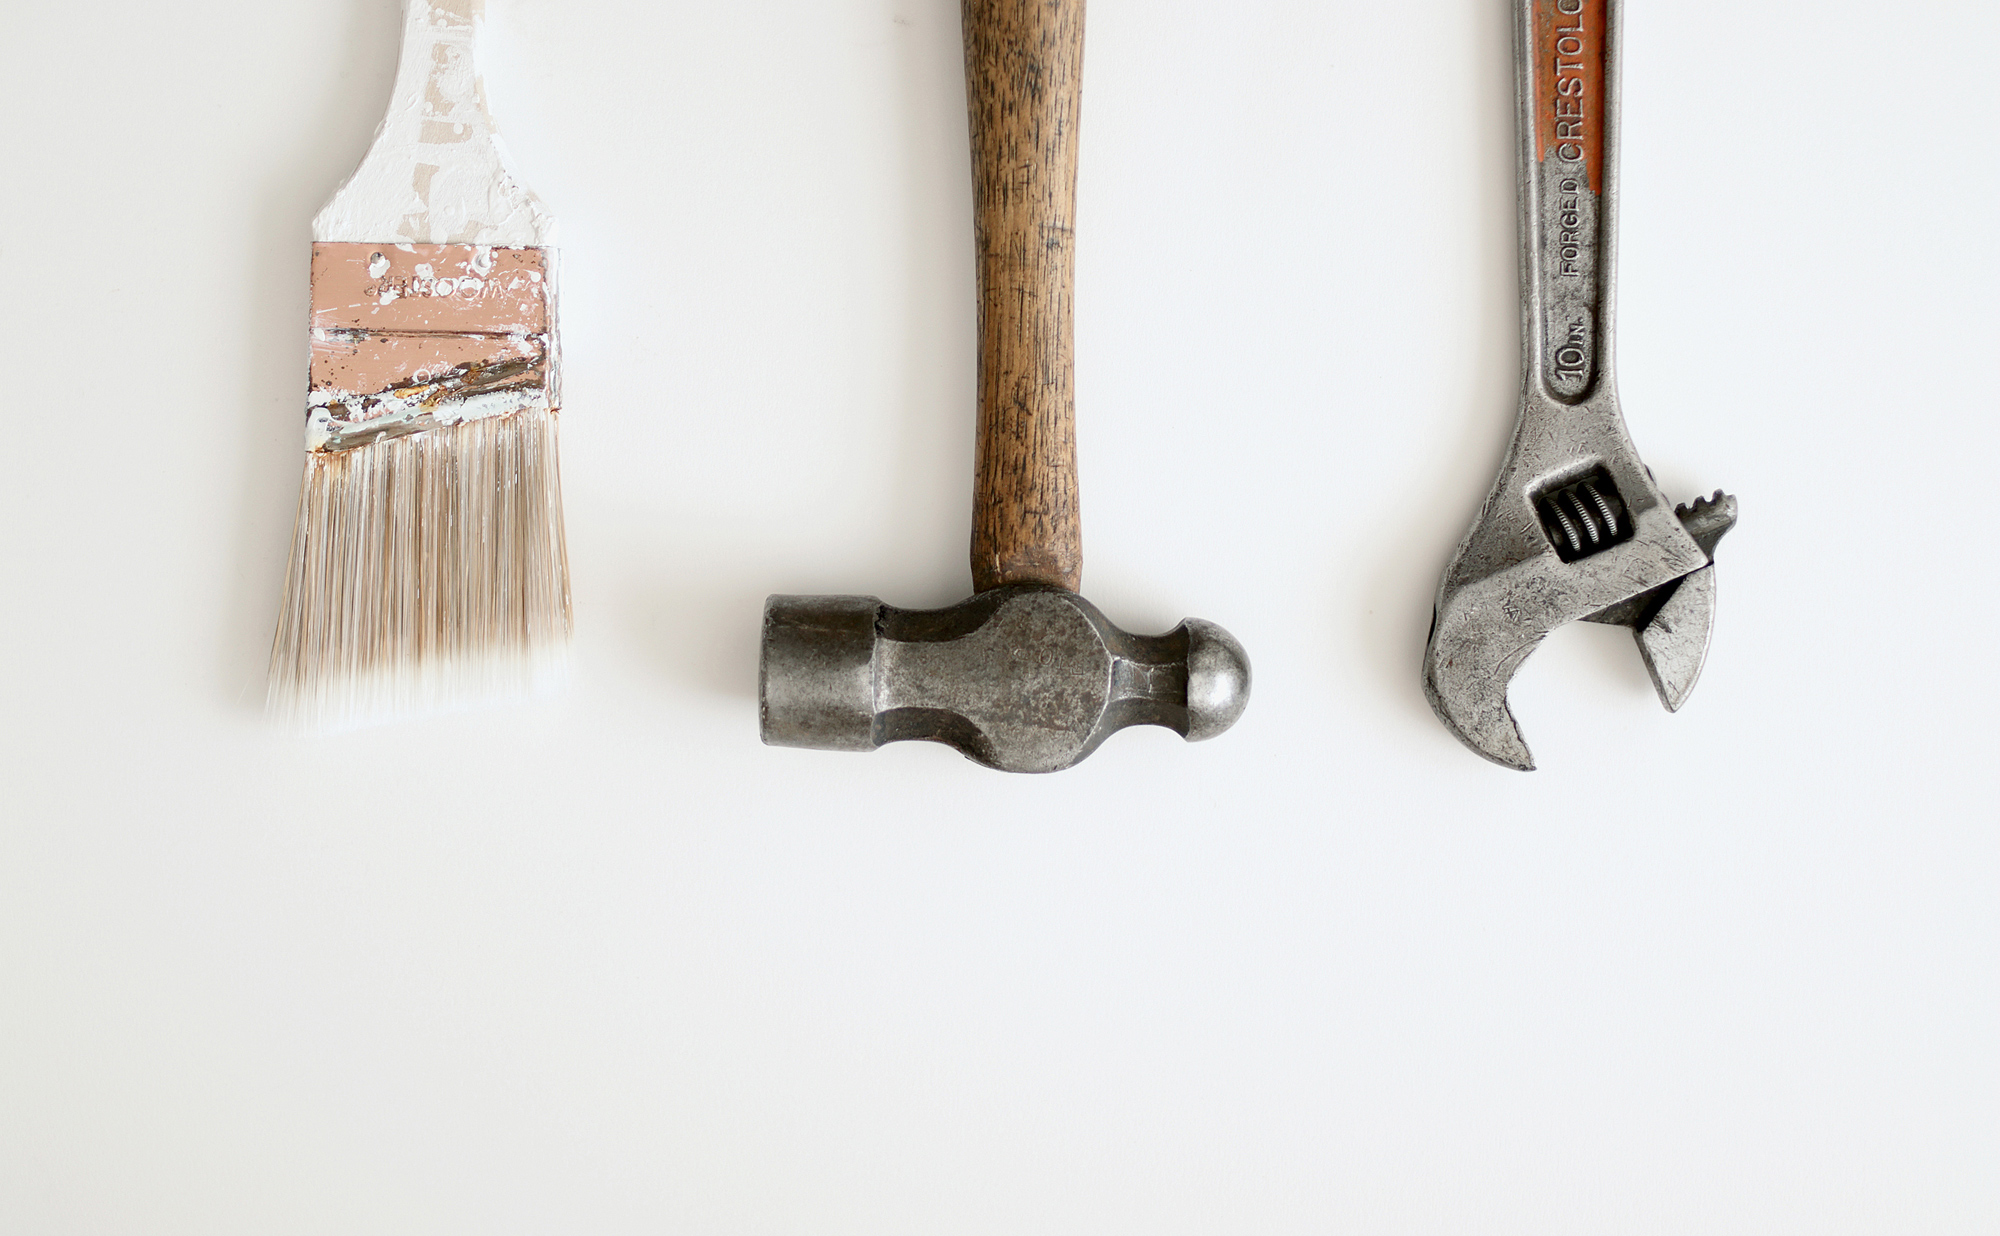 diy header tools